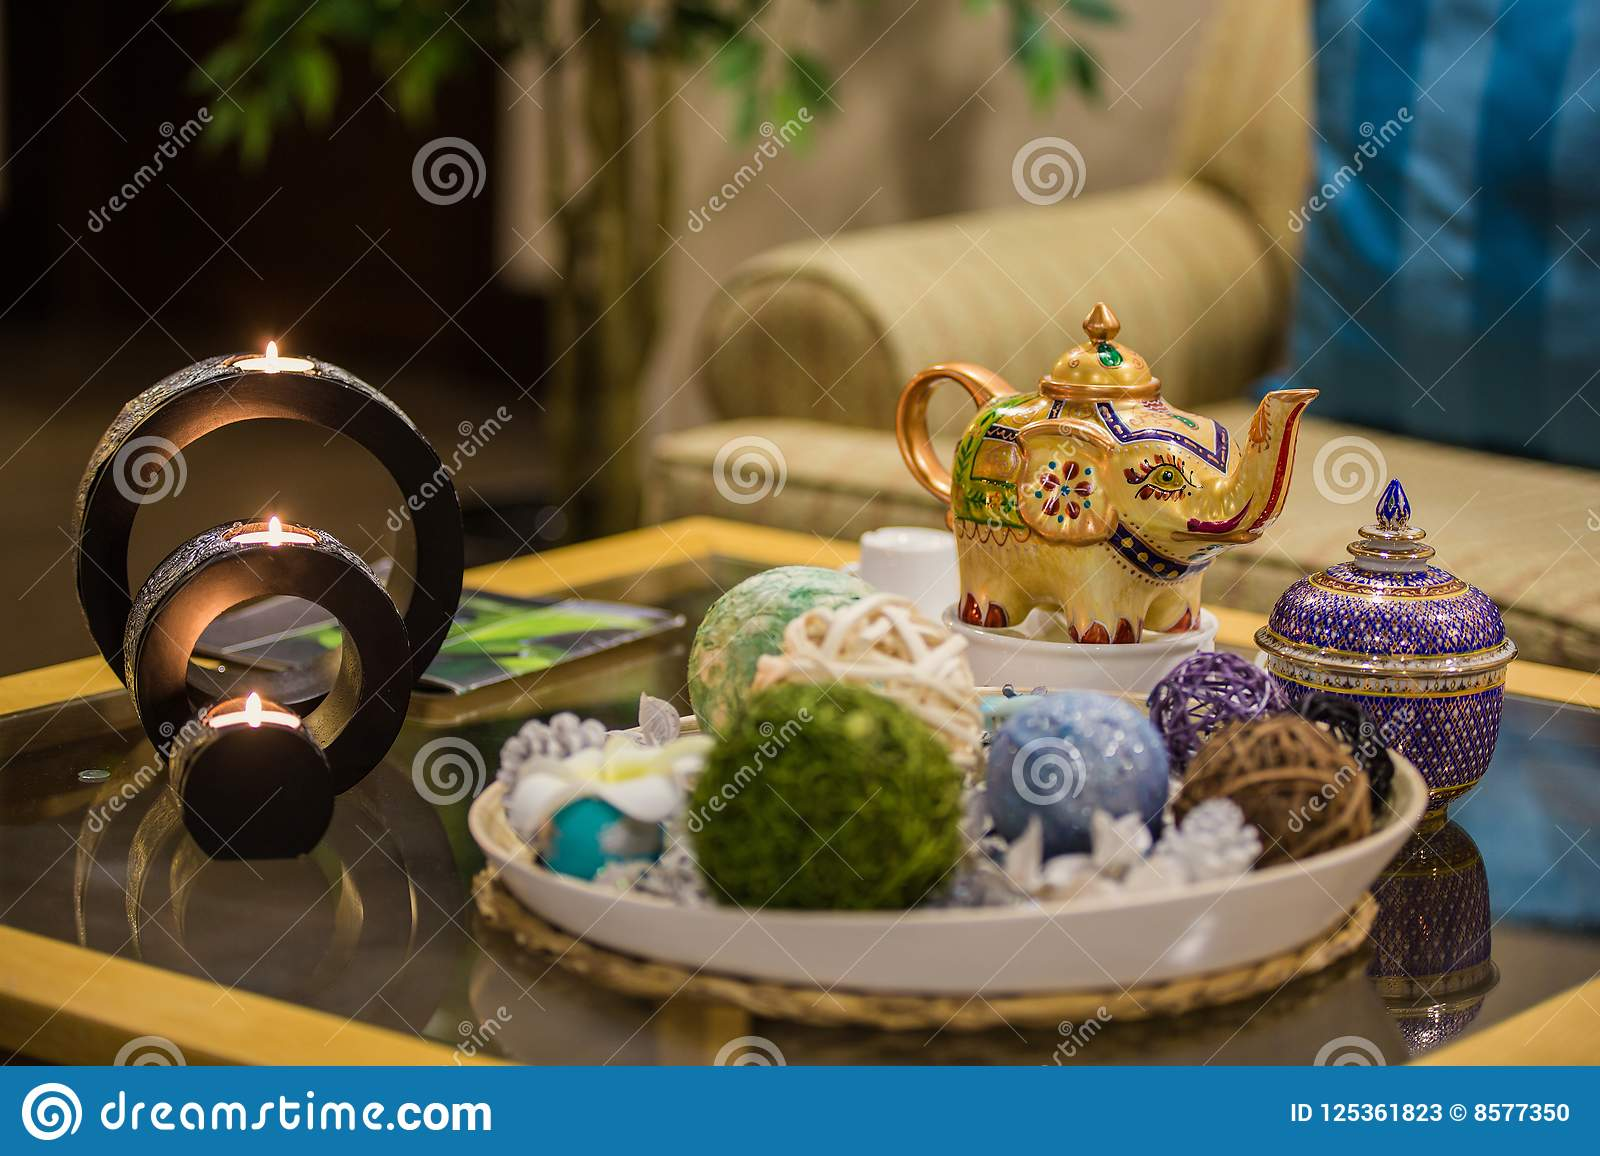 Thai interior details of spa, candles on table and kettle with tea